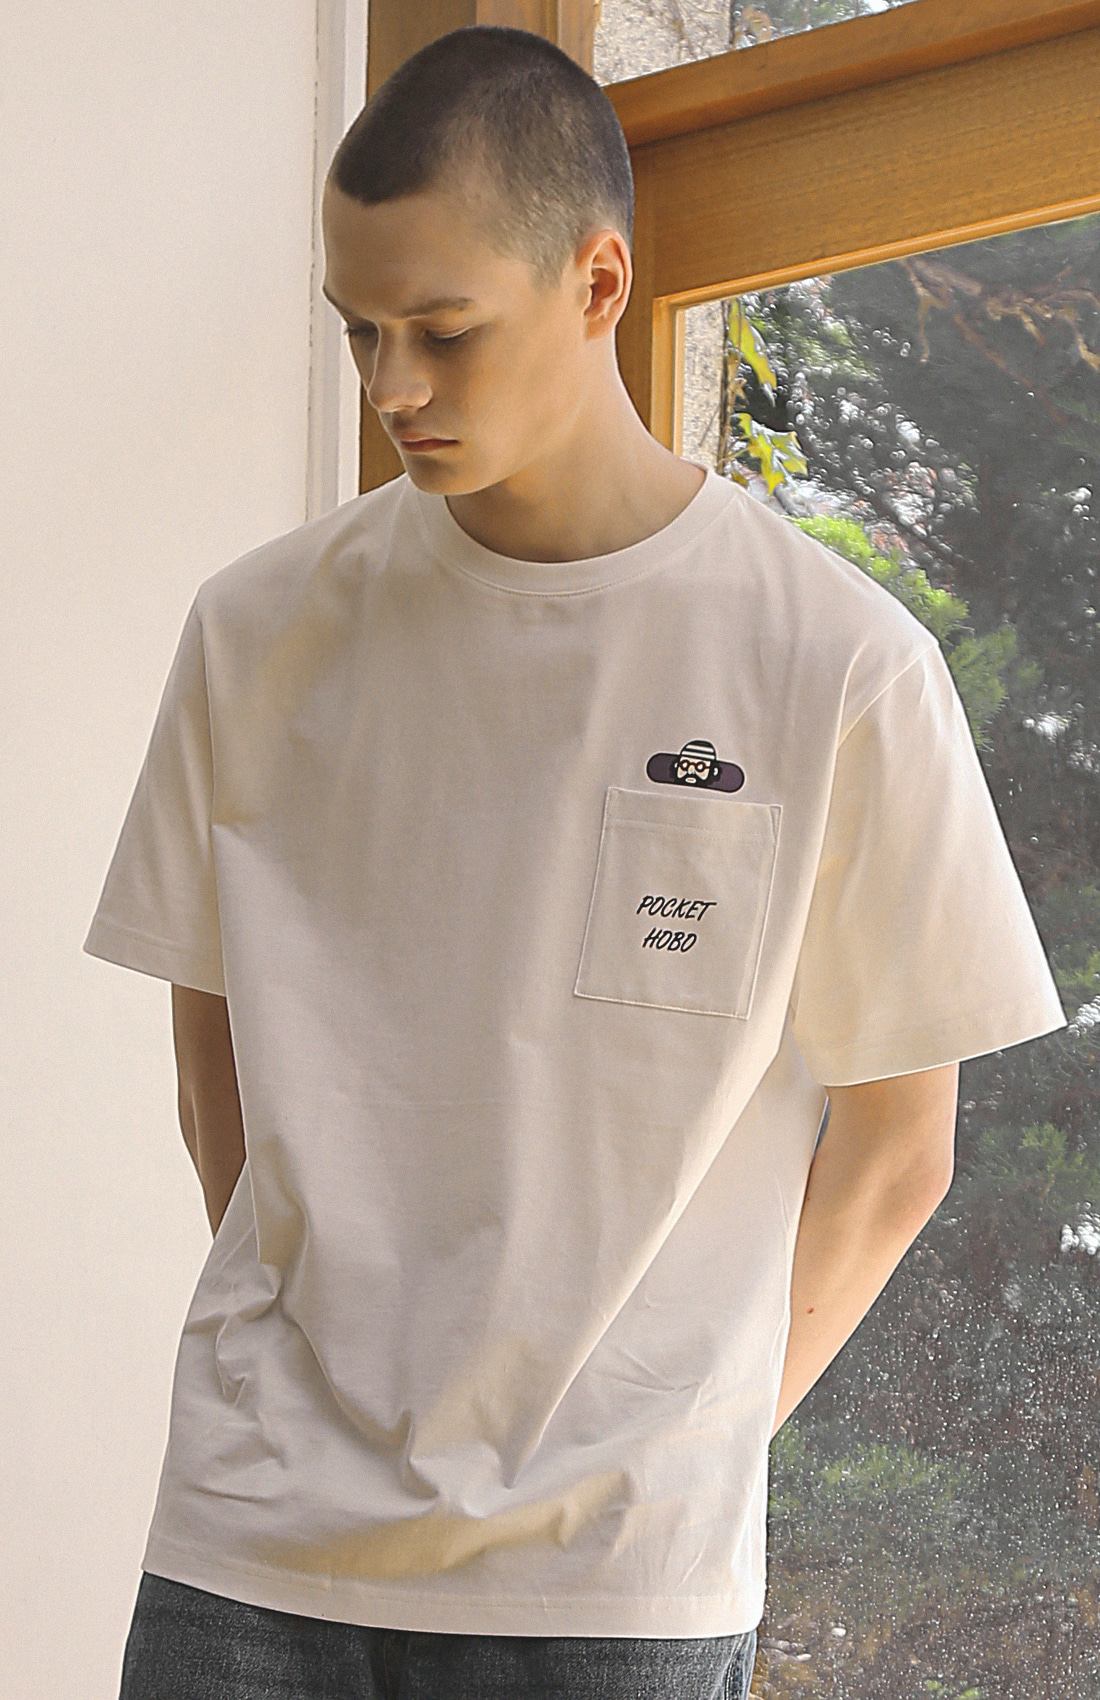 POCKET HOBO T-SHIRTS / WHITE